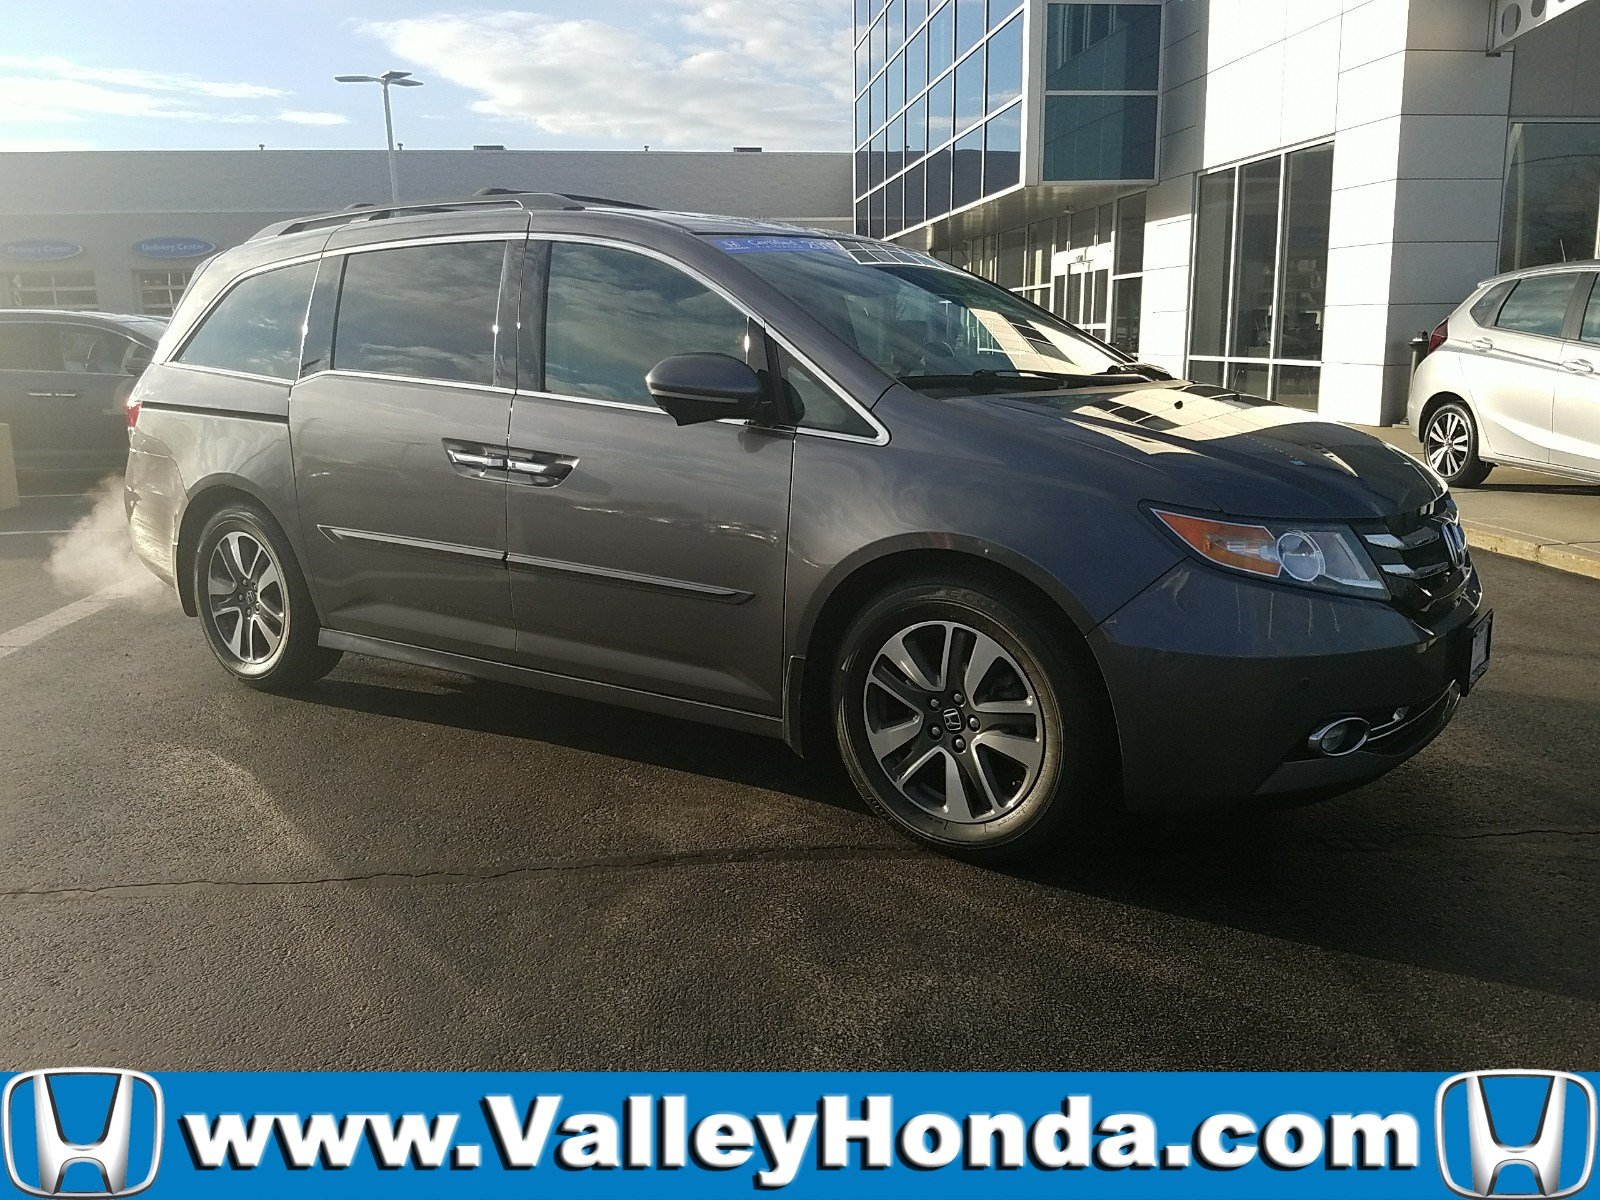 hero certified pre search honda vehicle your hondas canada used find img cuv owned